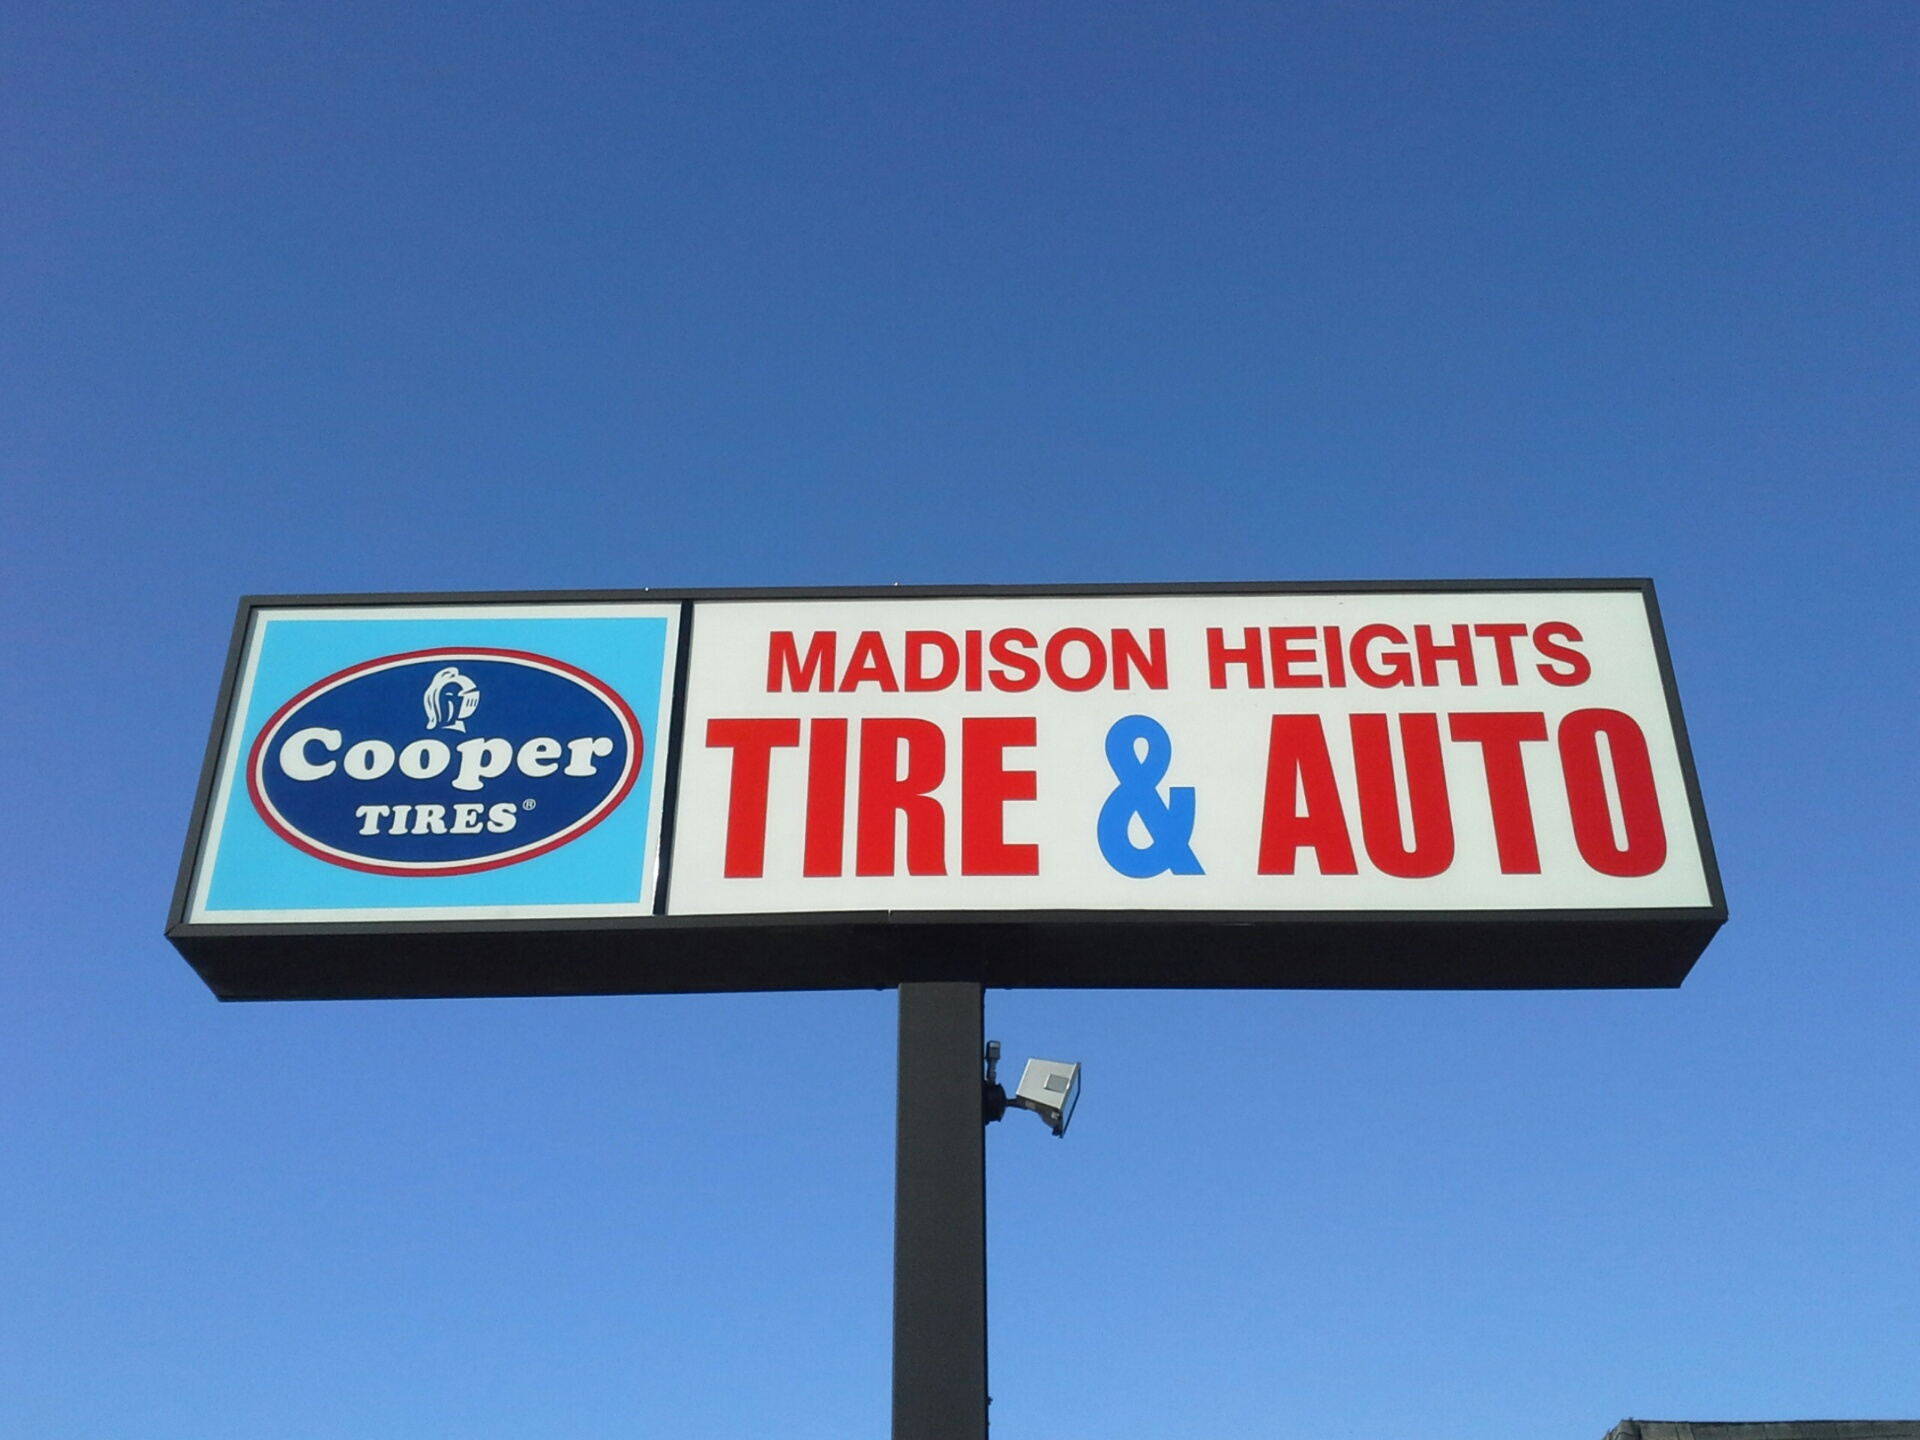 Madison Heights Tire & Auto image 1